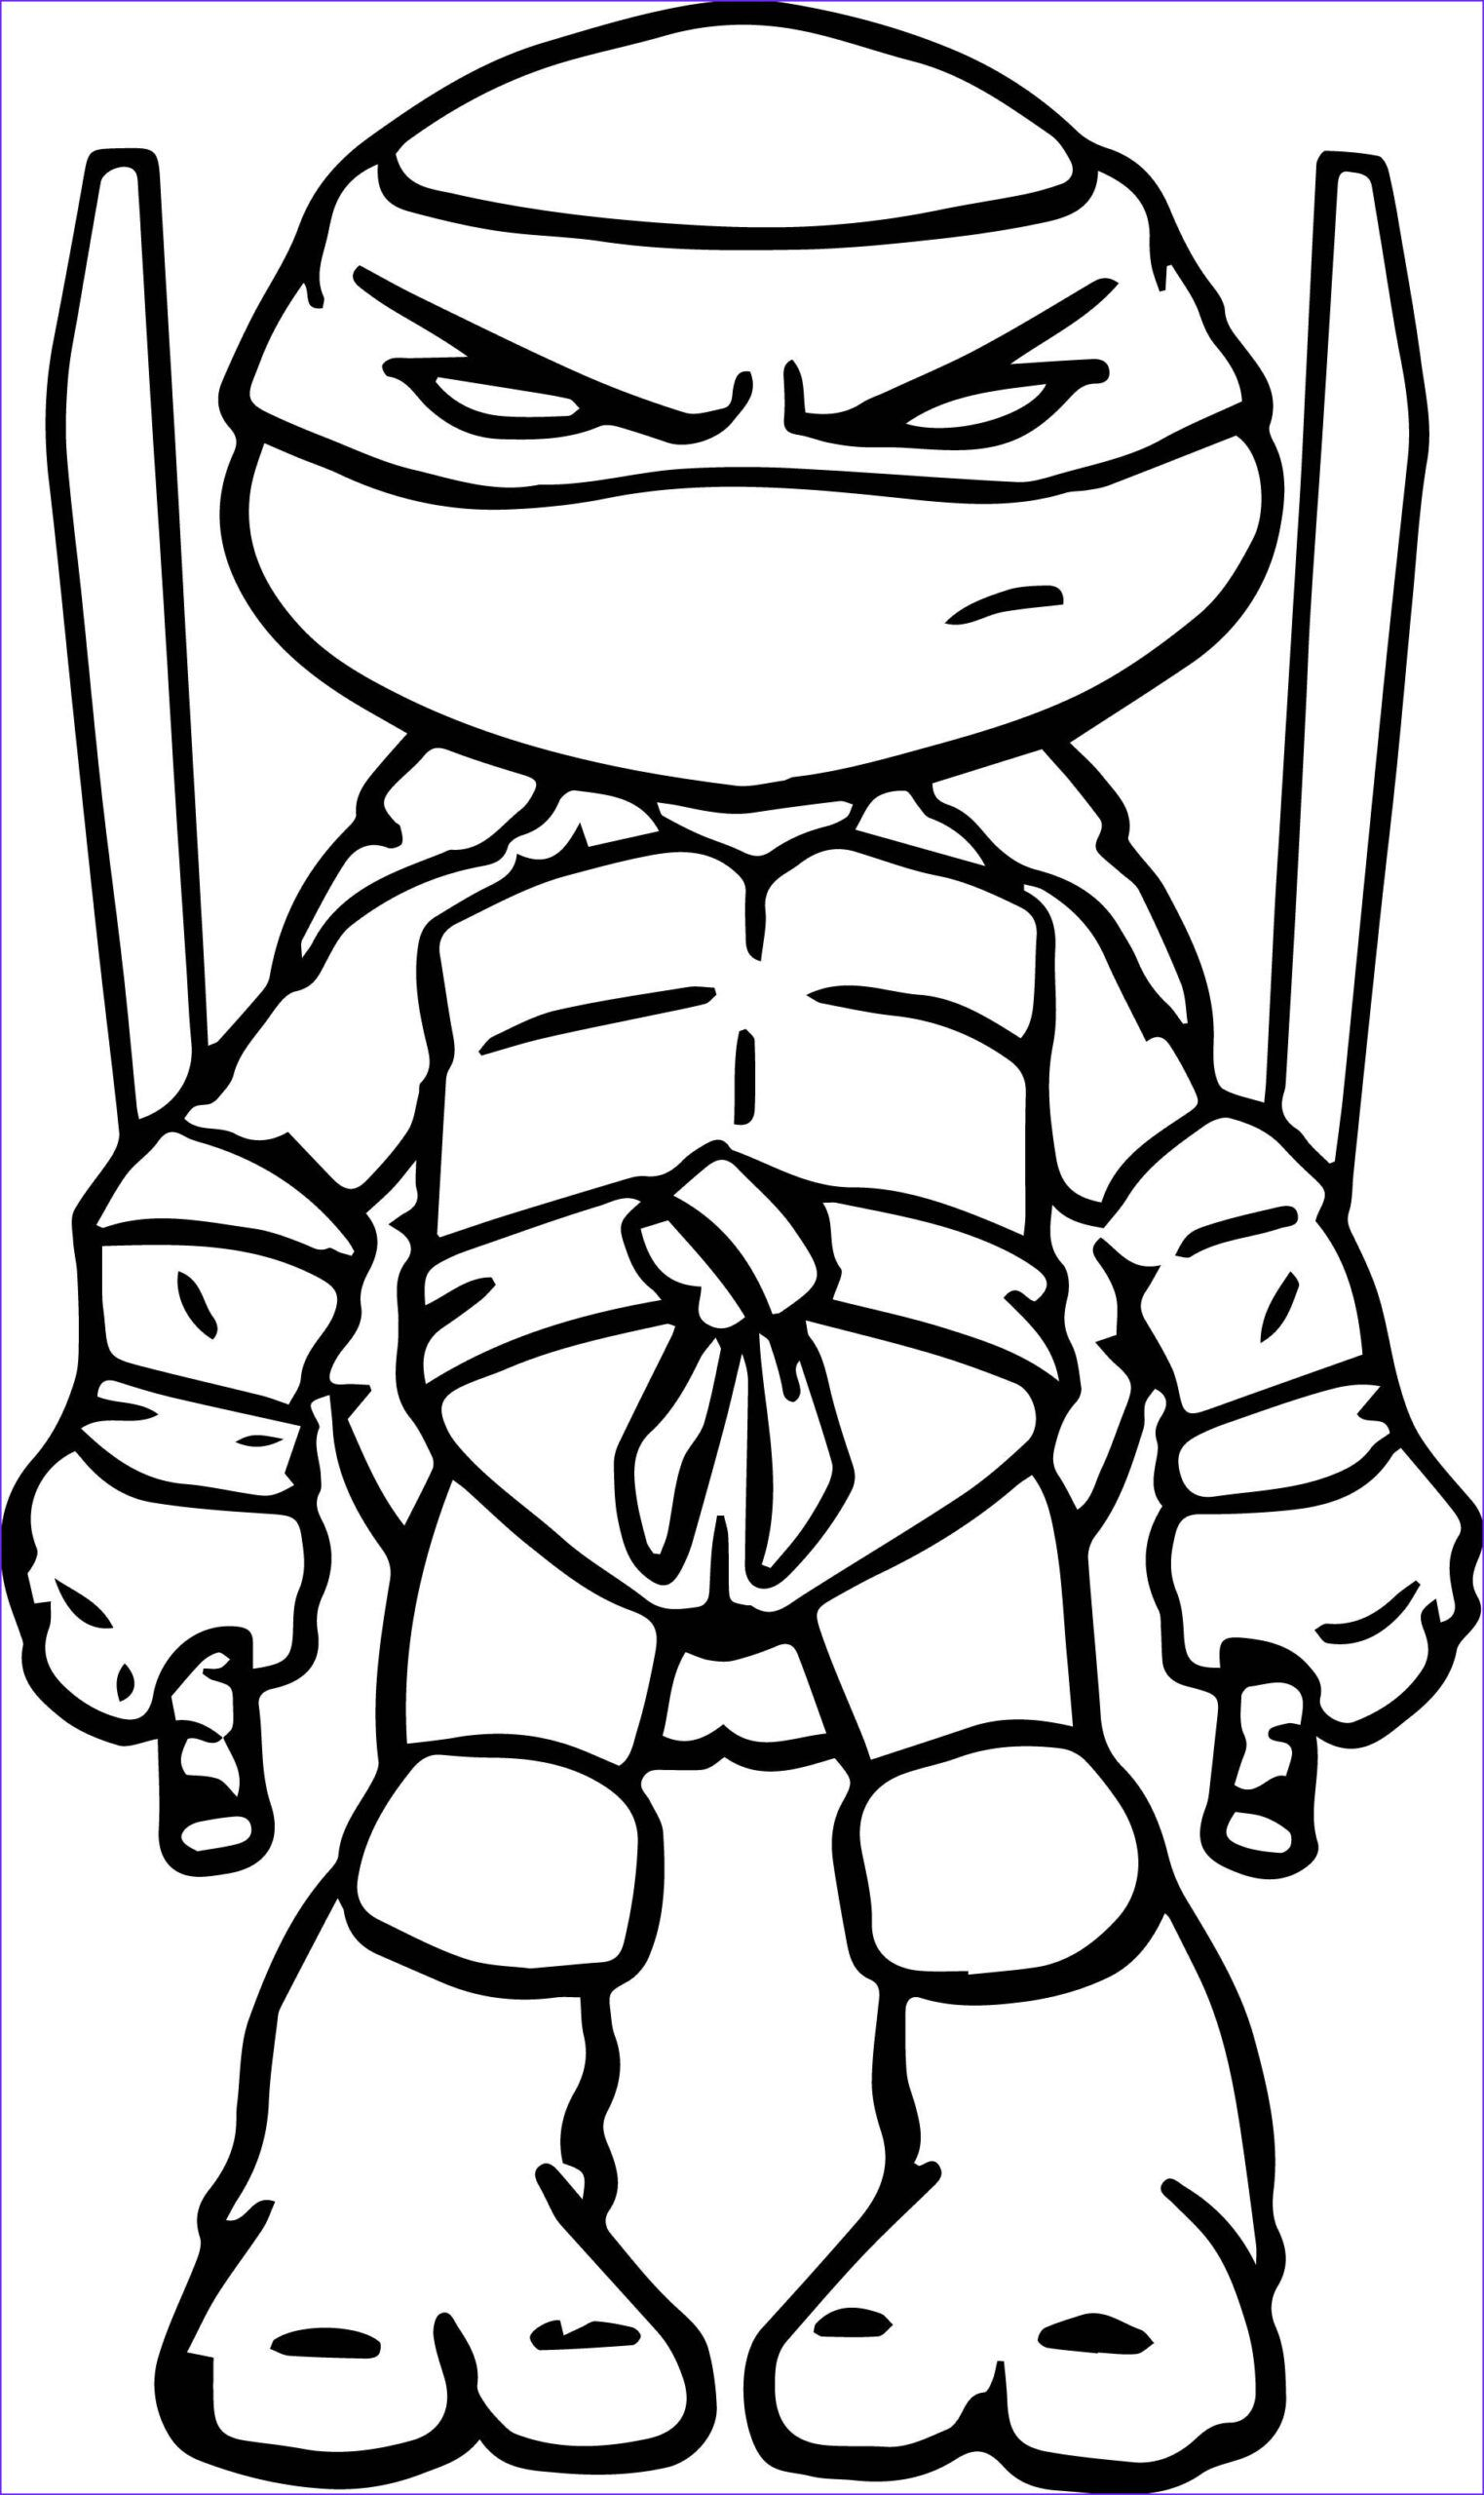 45 Inspirational Gallery Of Ninja Turtles Coloring Pages